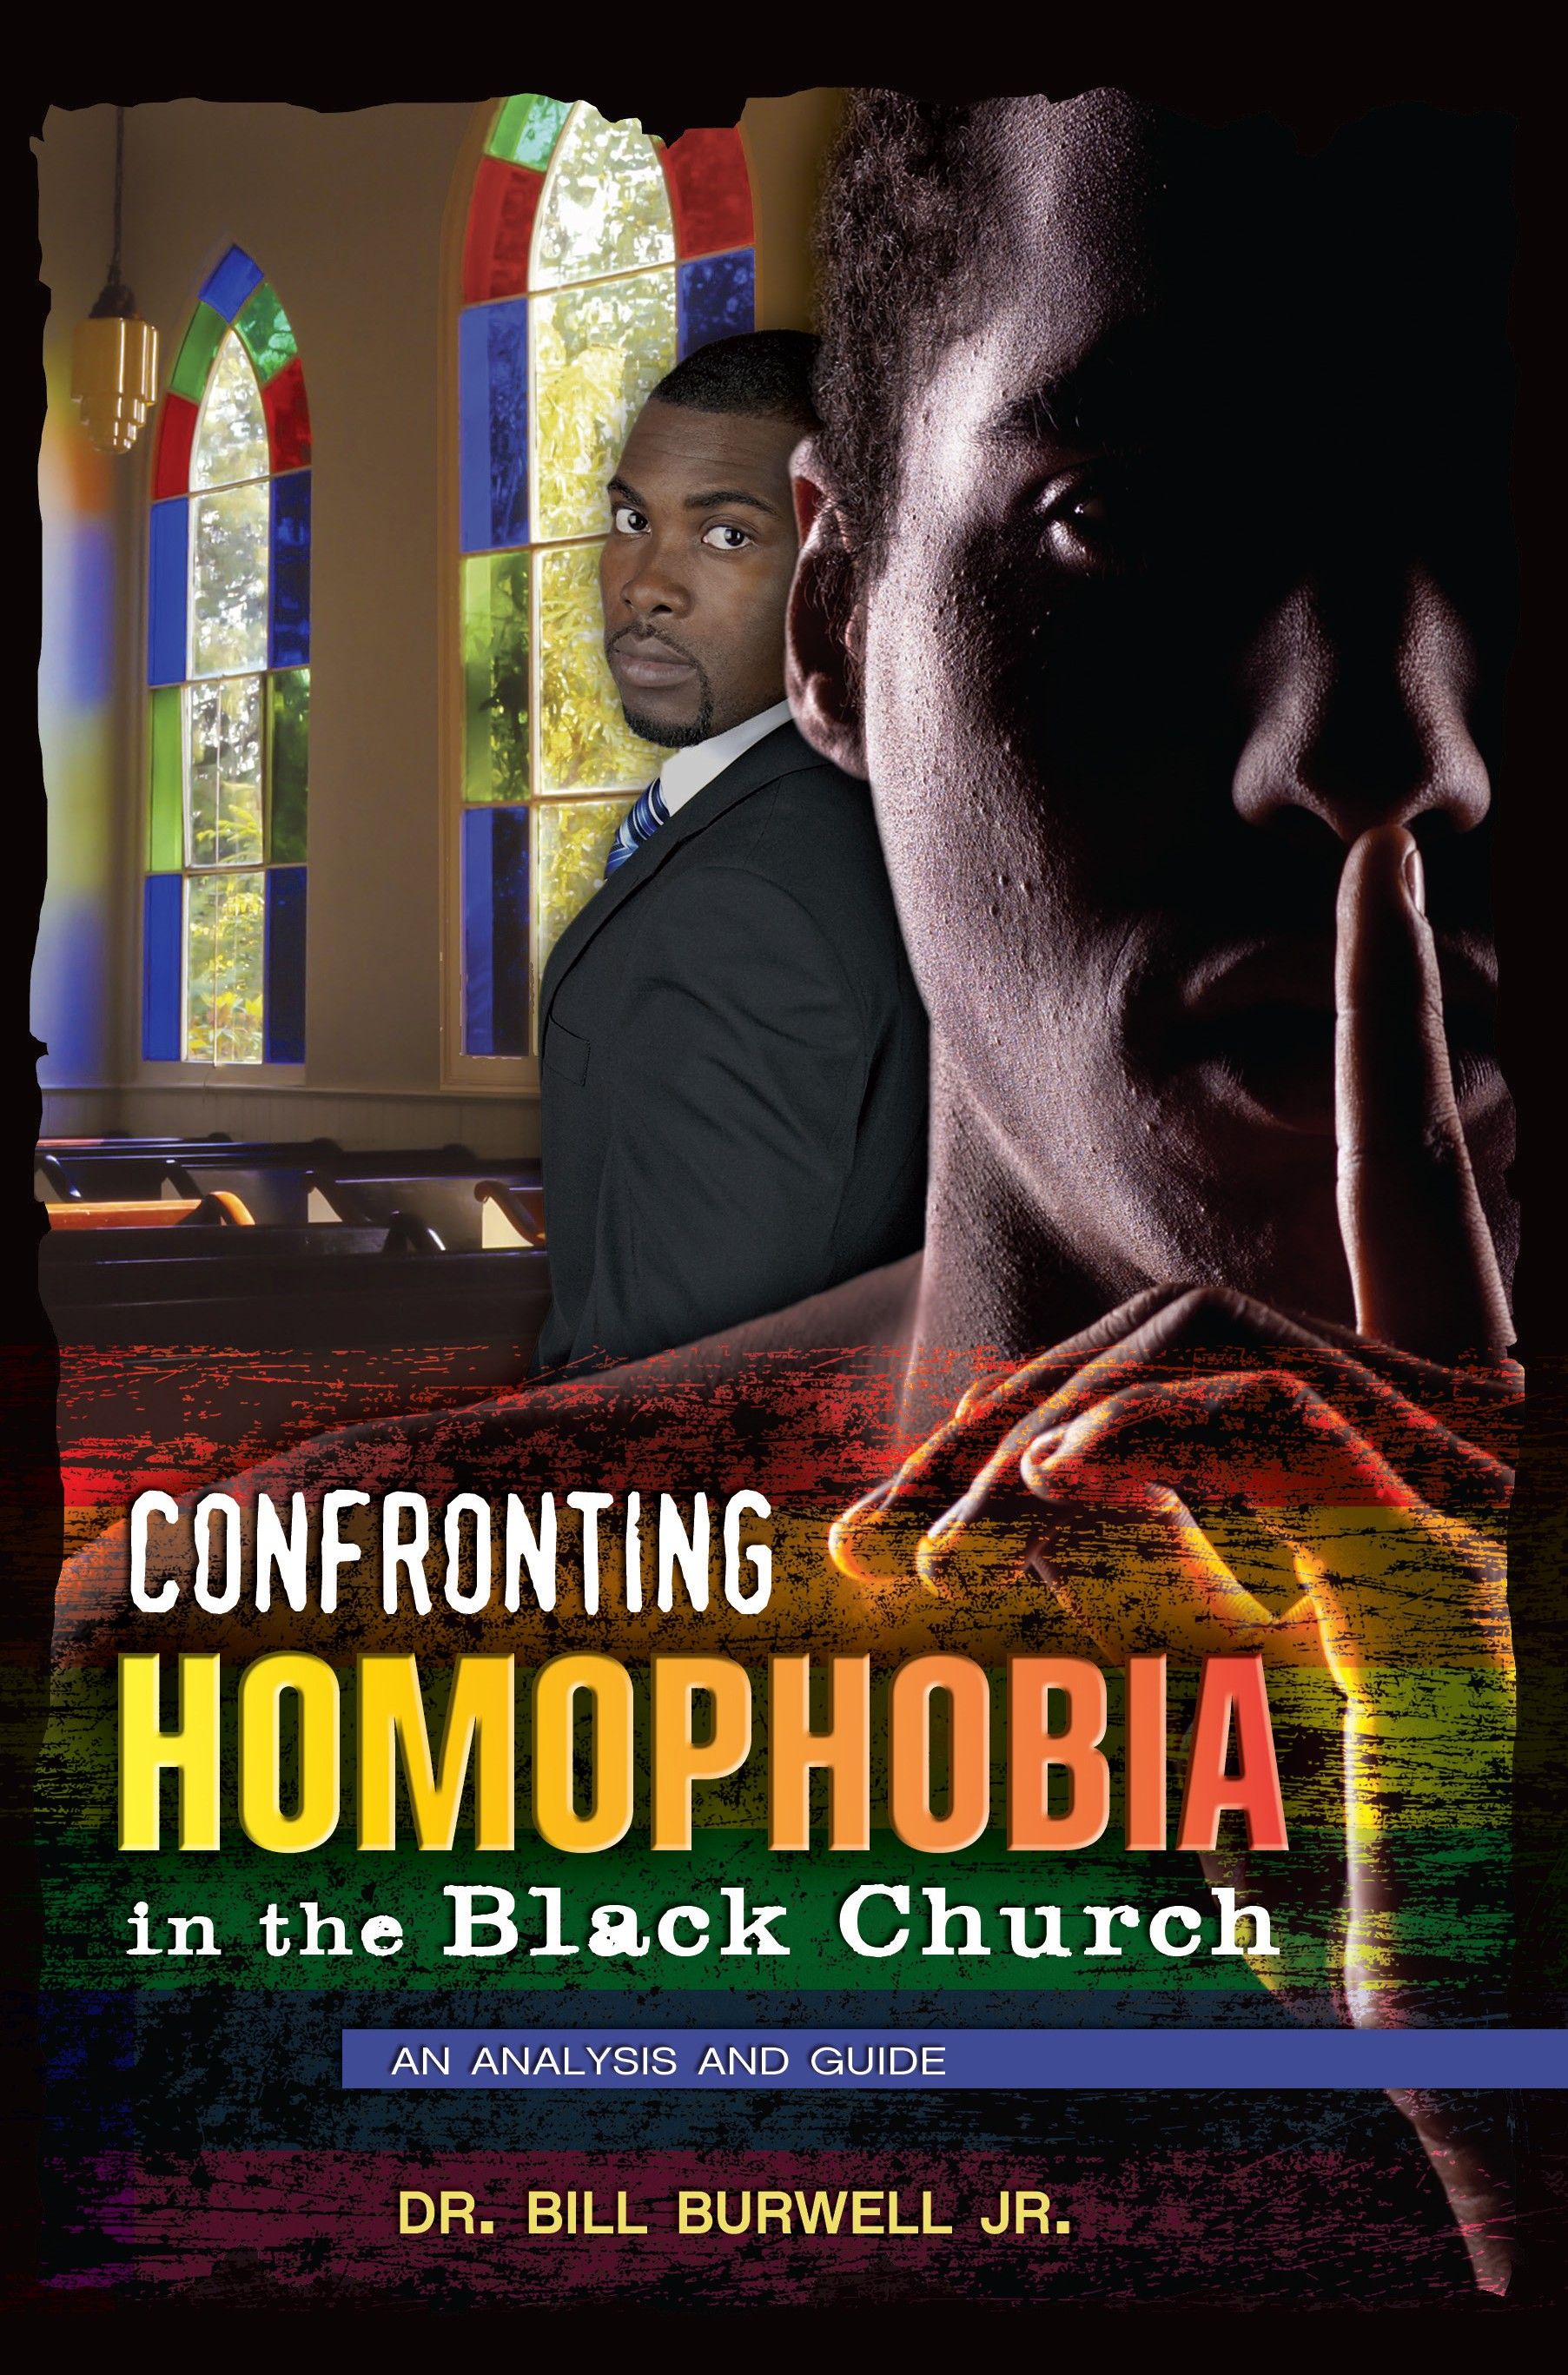 Confronting Homophobia in the Black Church: Analysis and Guide